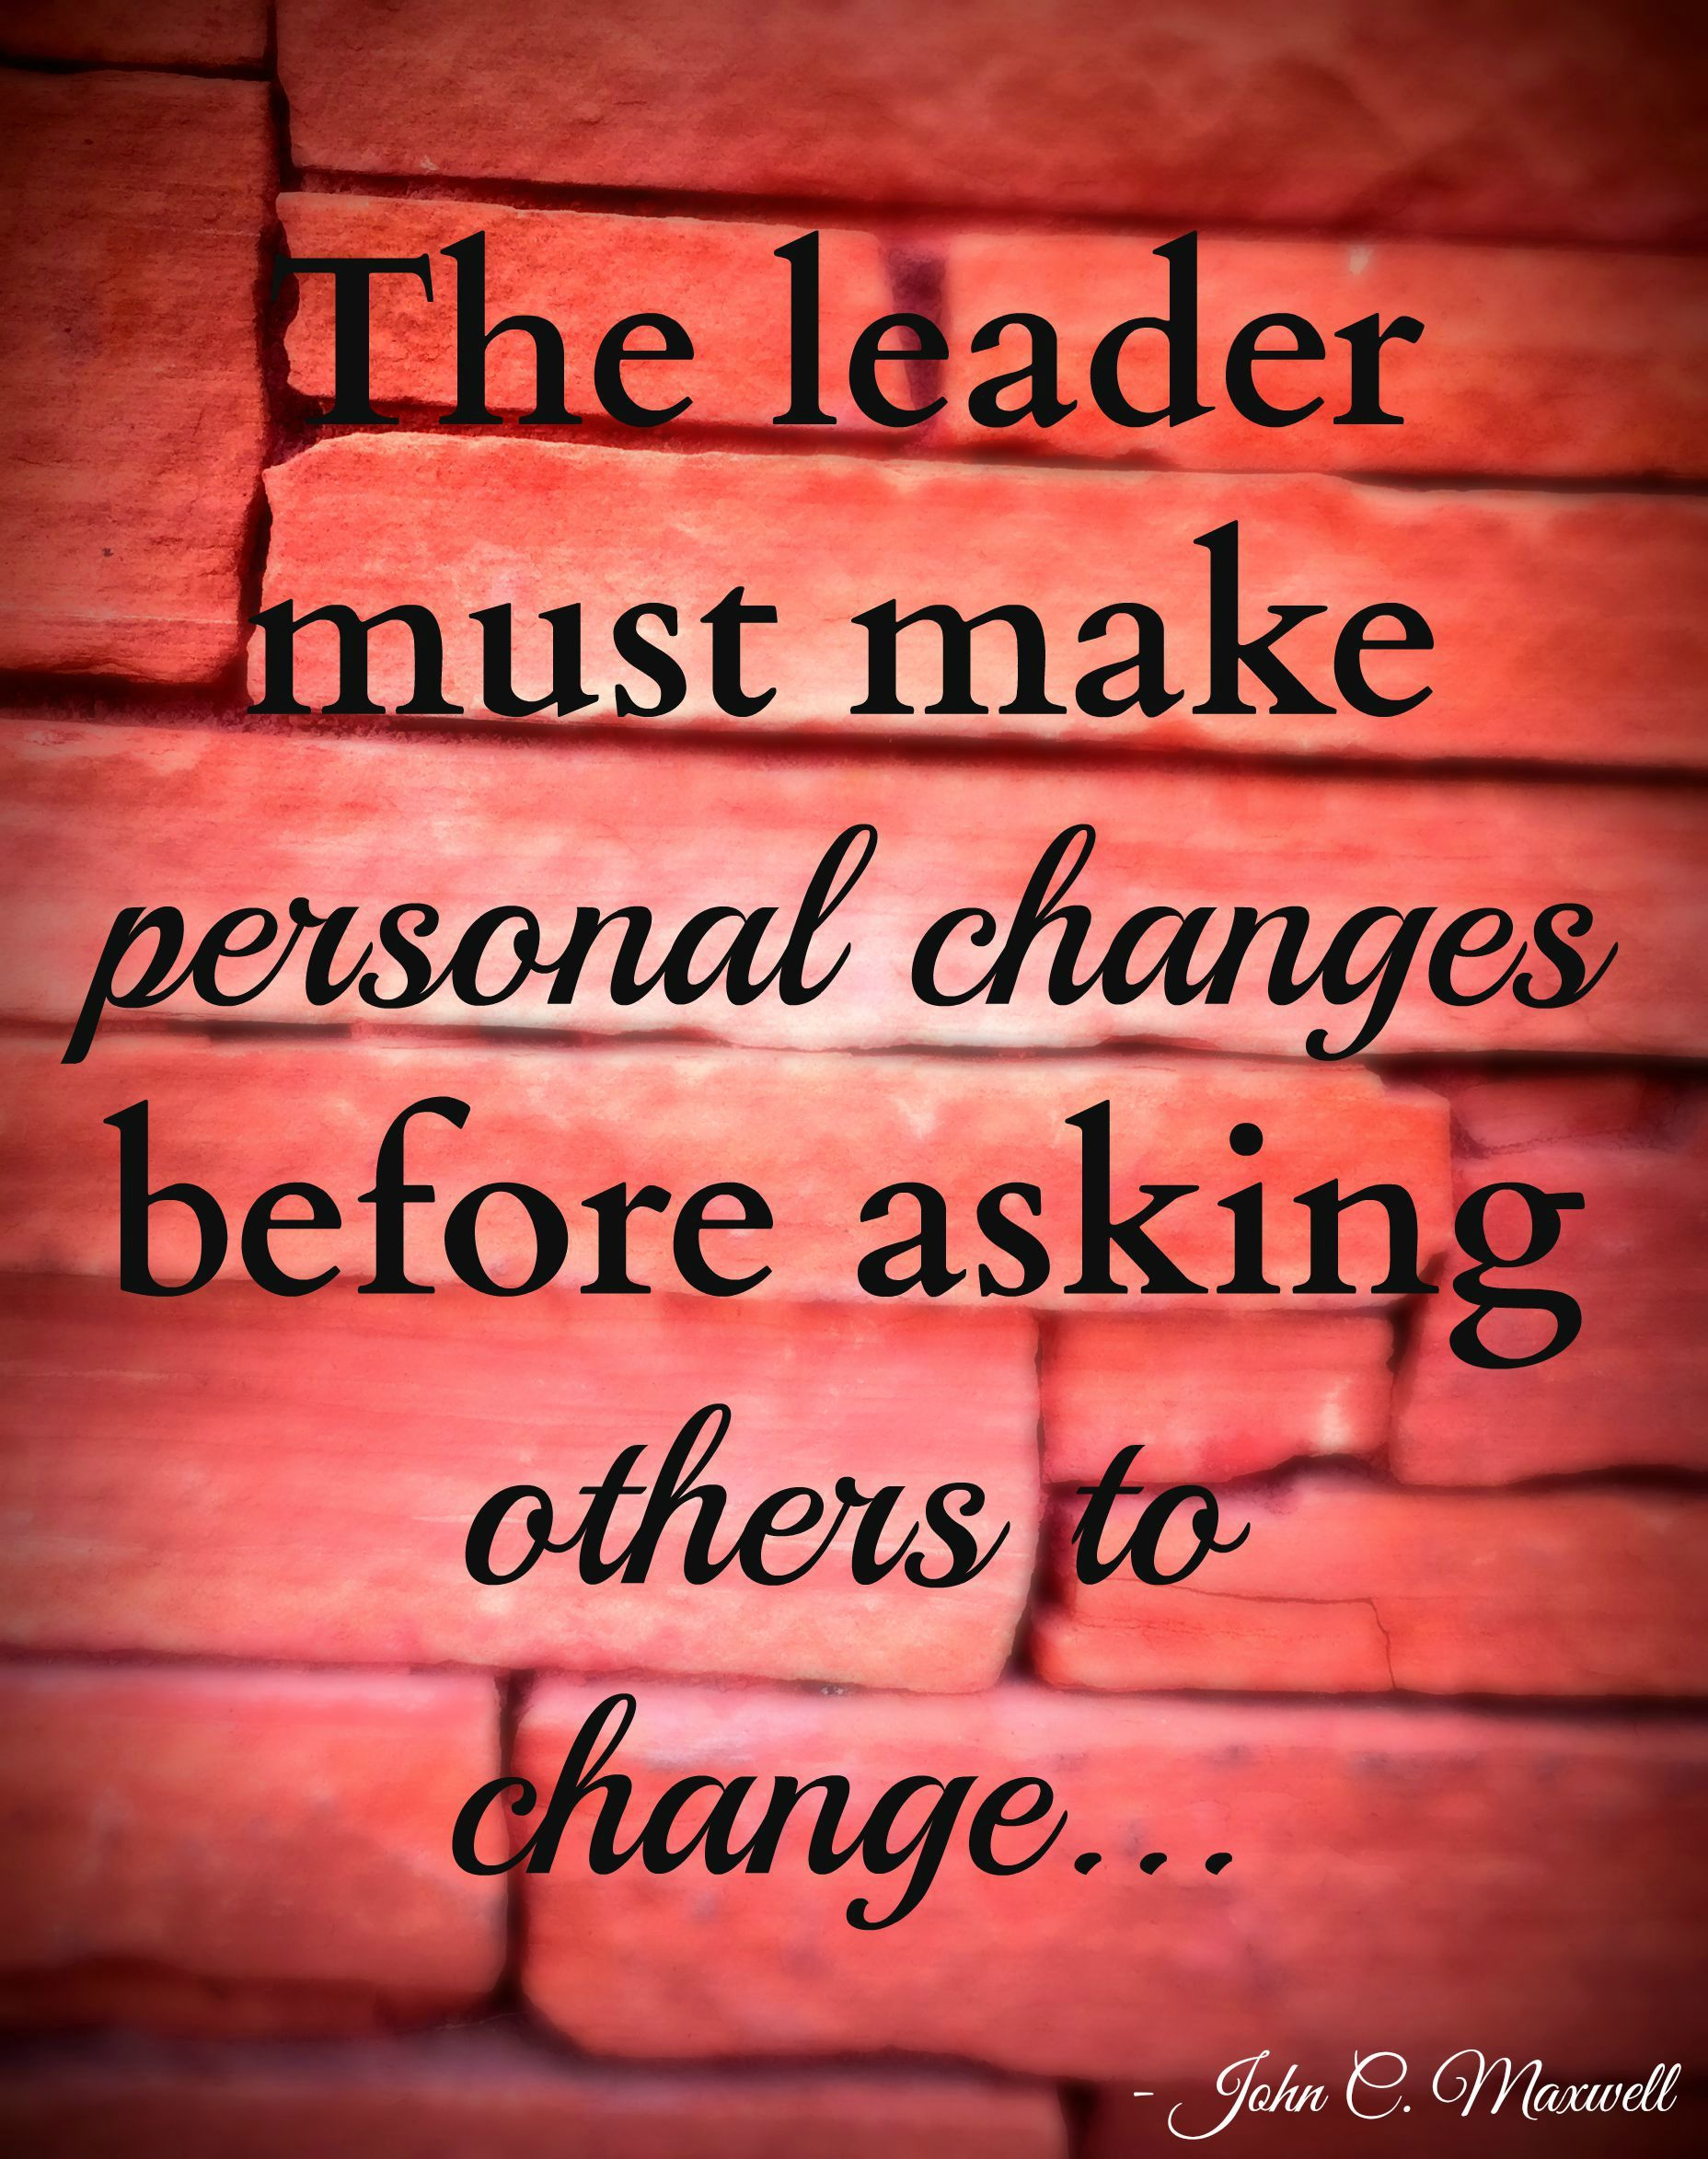 The leader must make personal changes before asking others